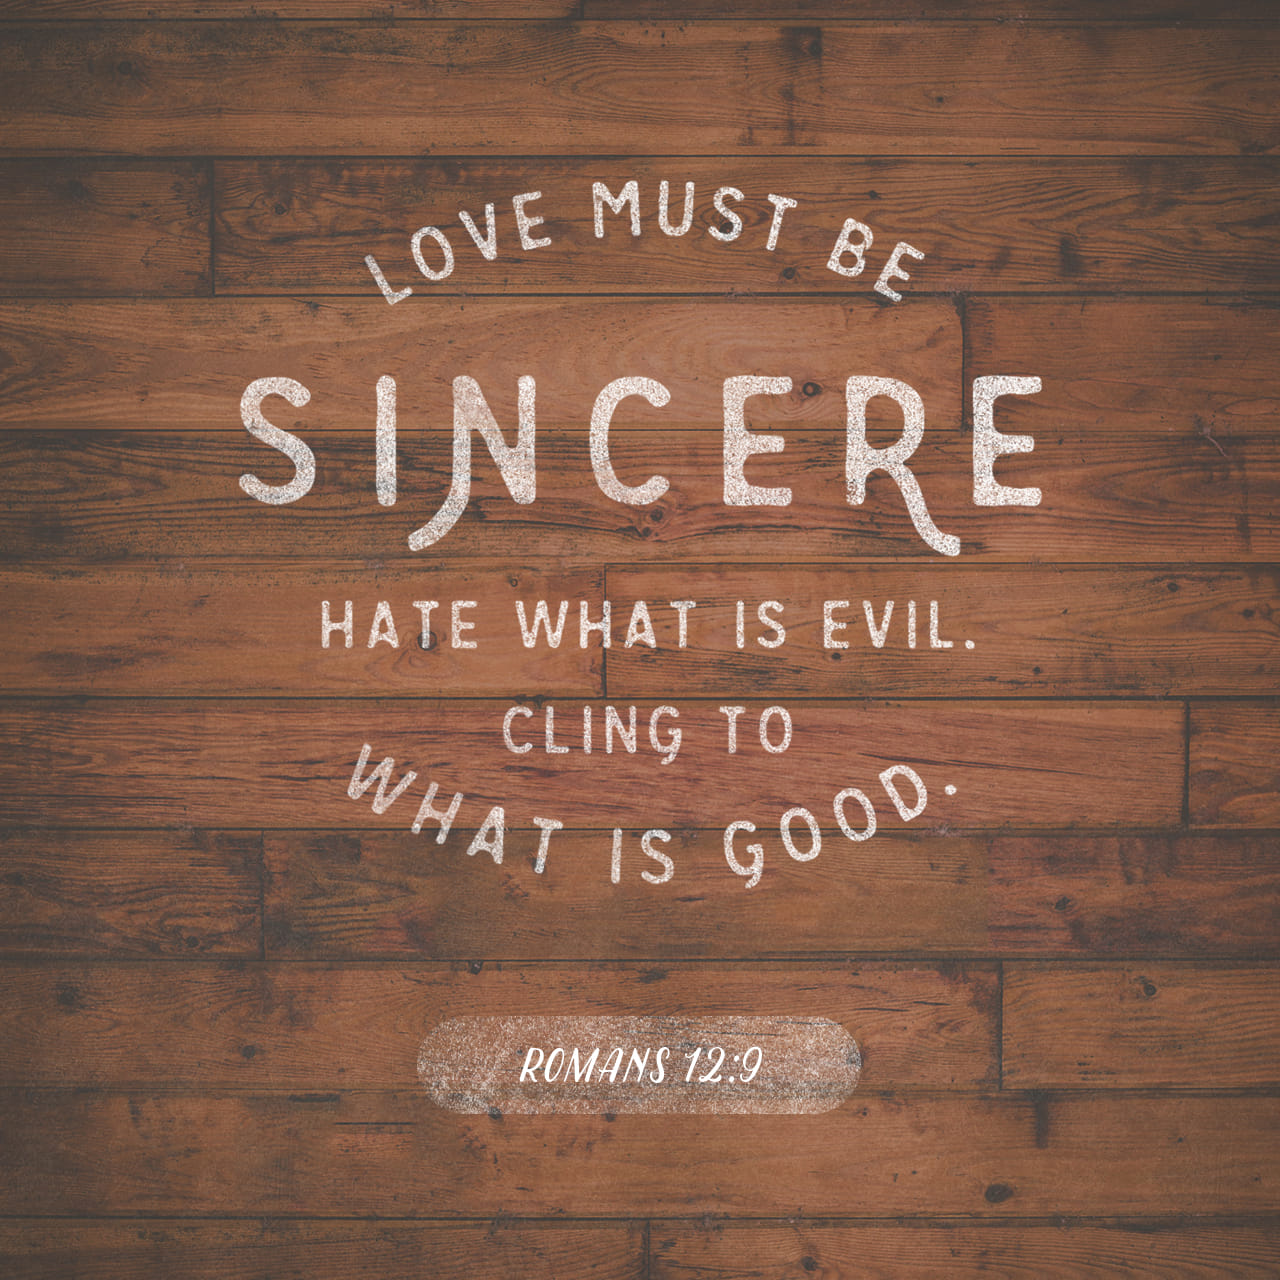 Romans 12:9 Let love be without dissimulation. Abhor that which is evil; cleave to that which is good. | King James Version (KJV)